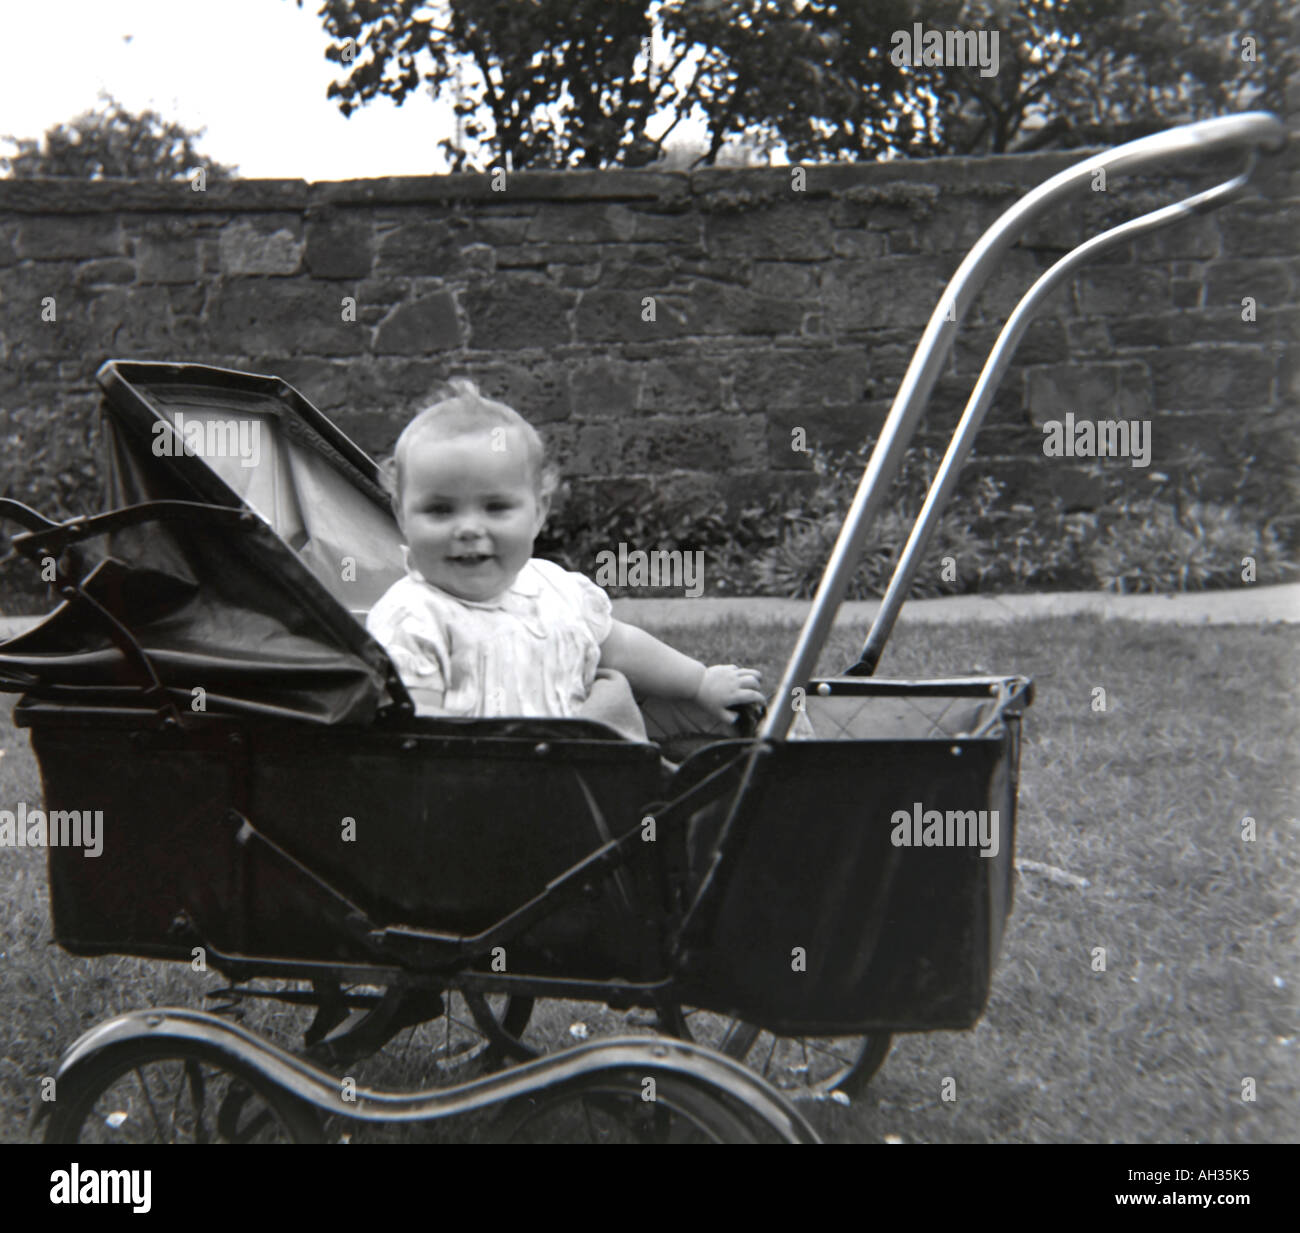 OLD VINTAGE FAMILY SNAPSHOT PHOTOGRAPH OF BABY SITTING AND SMILING IN FASHIONED PRAM